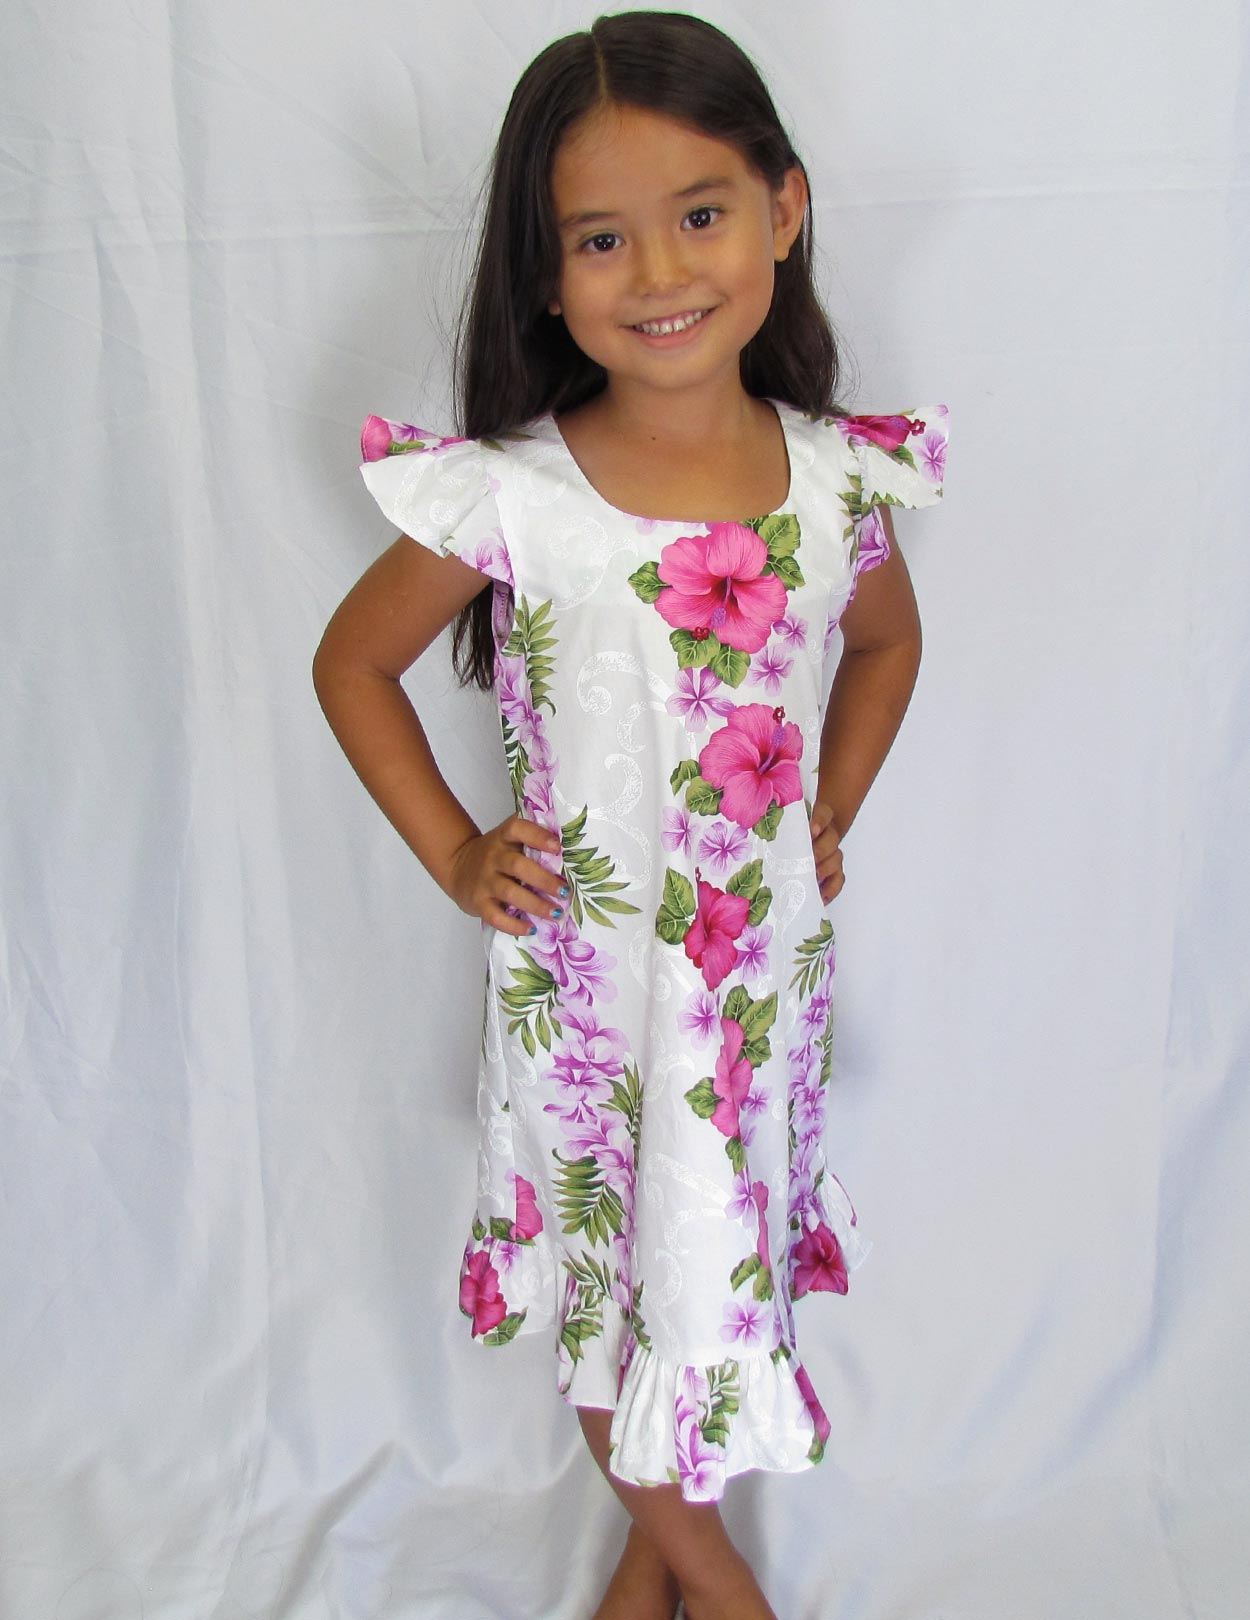 Girl Hawaiian Dress Big Island White Pink: Shaka Time ...